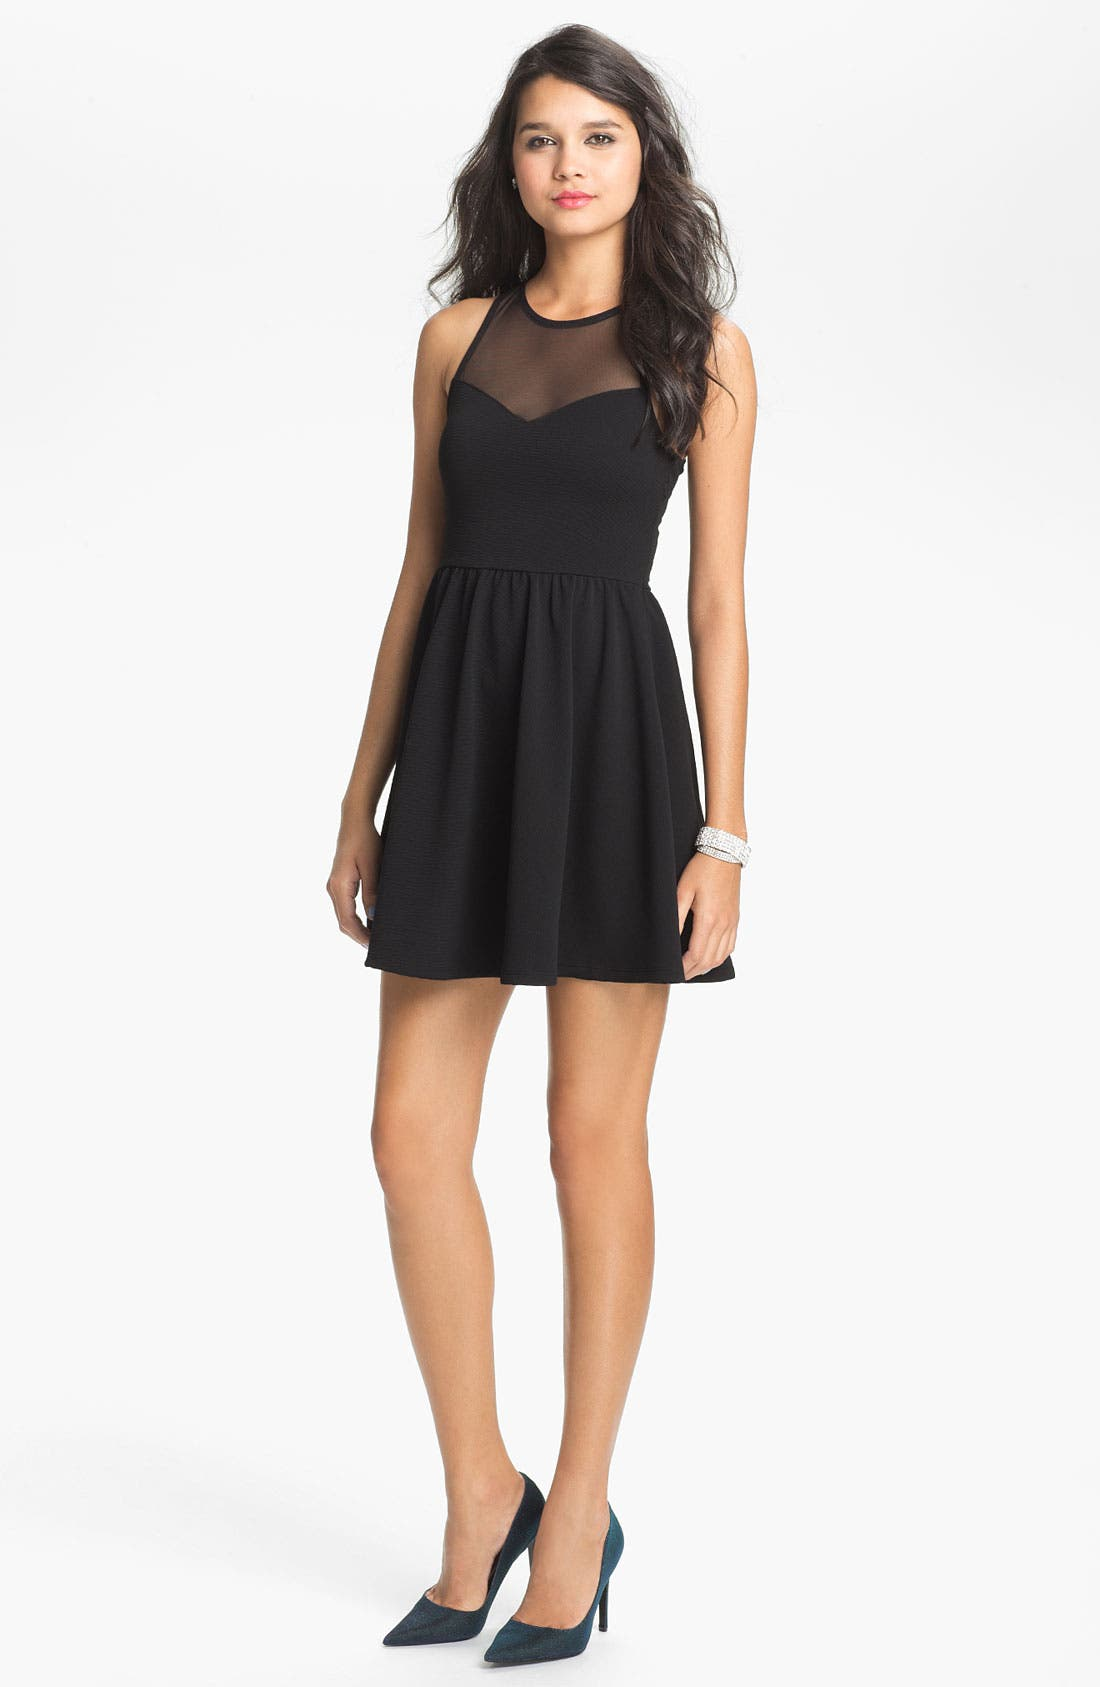 Alternate Image 1 Selected - Lush Illusion Fit & Flare Dress (Juniors)